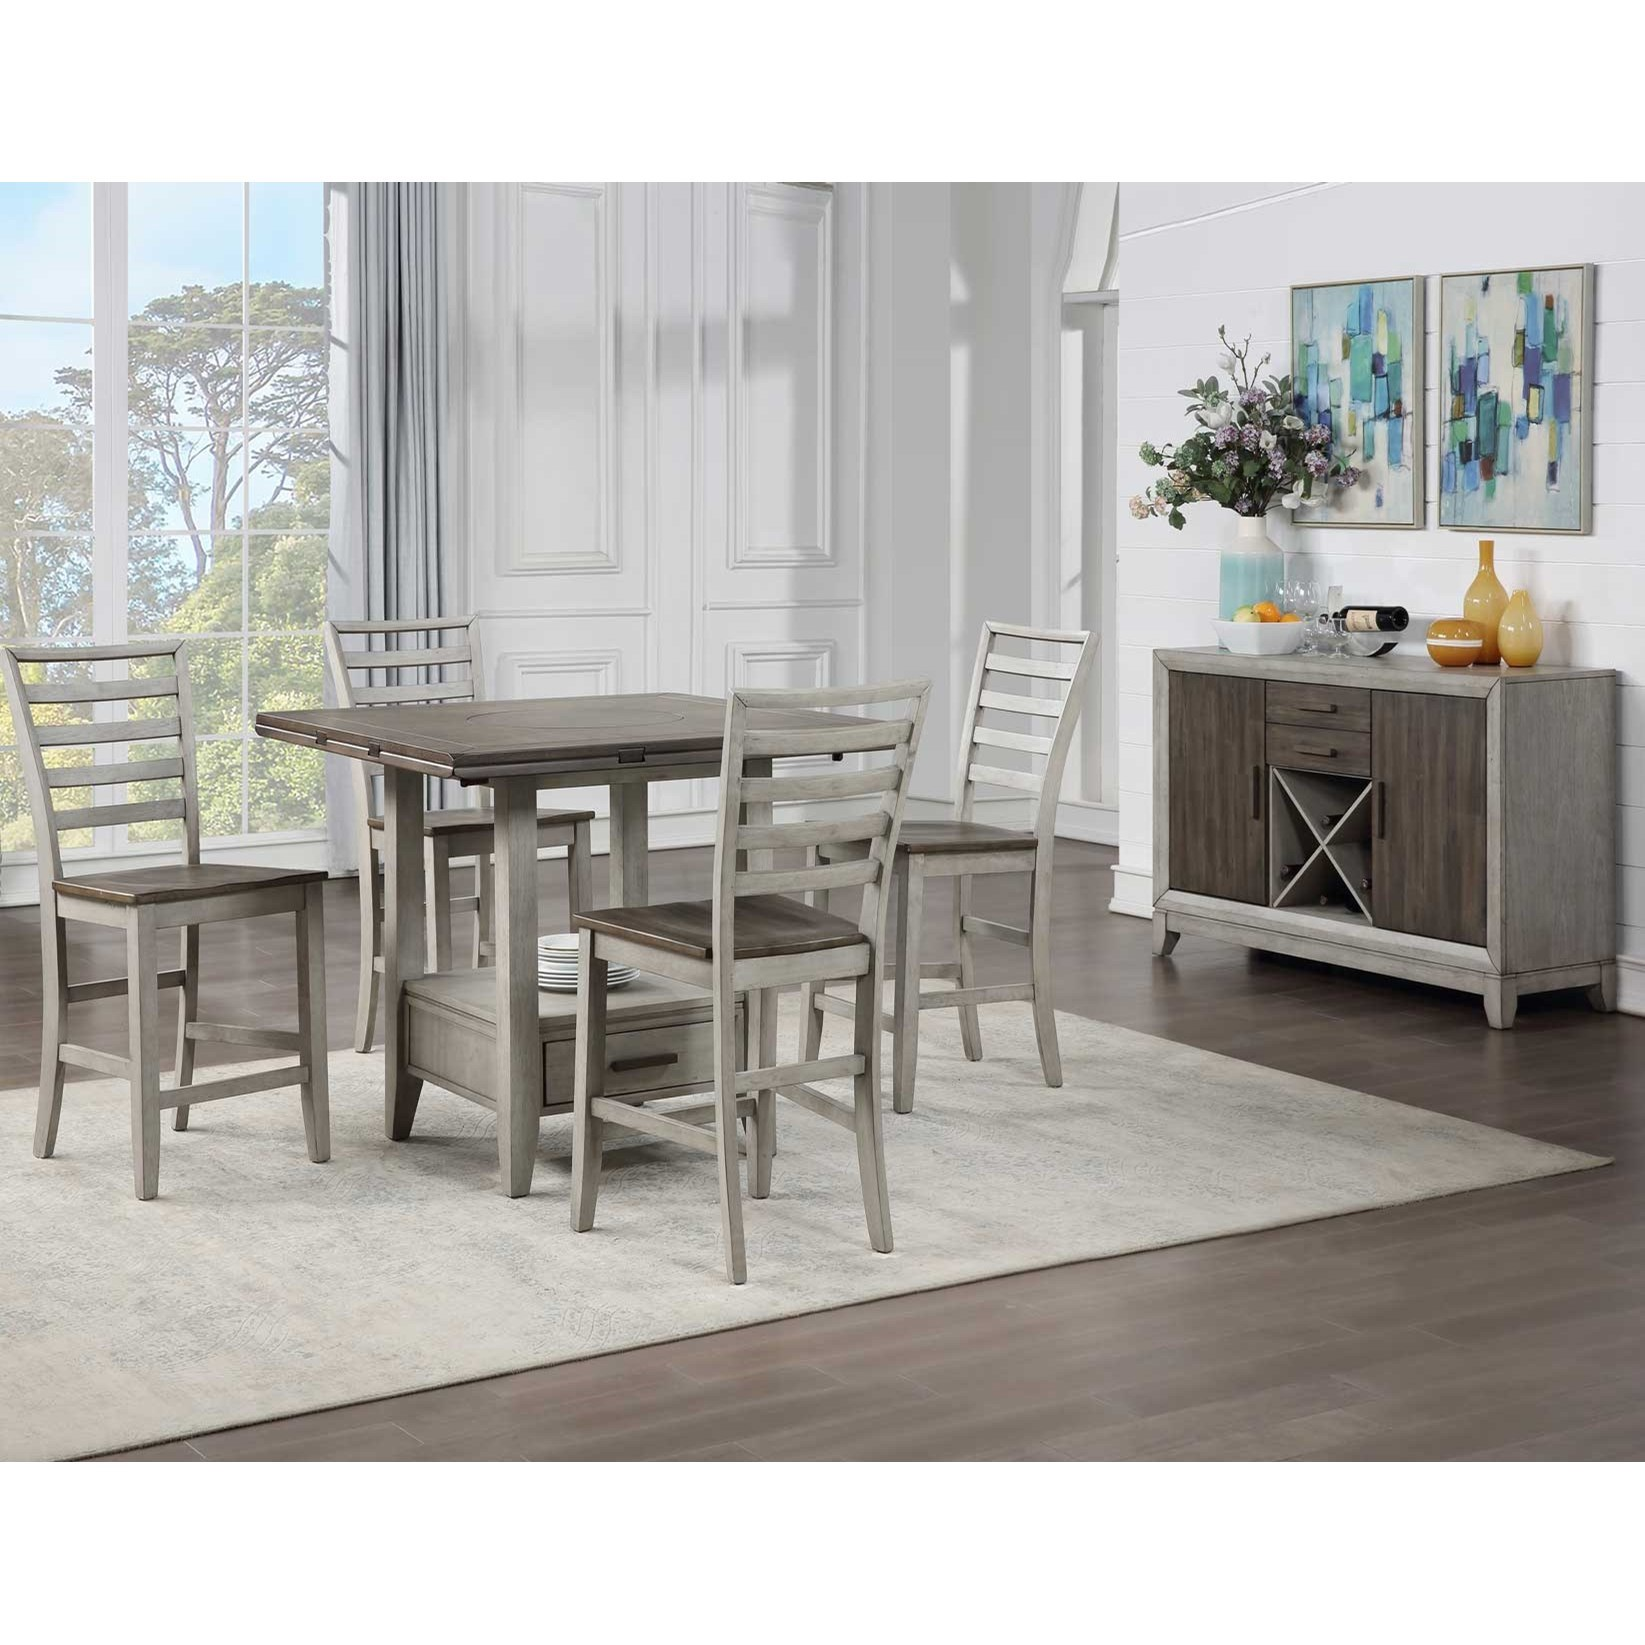 Abacus Dining Room Group by Steve Silver at A1 Furniture & Mattress